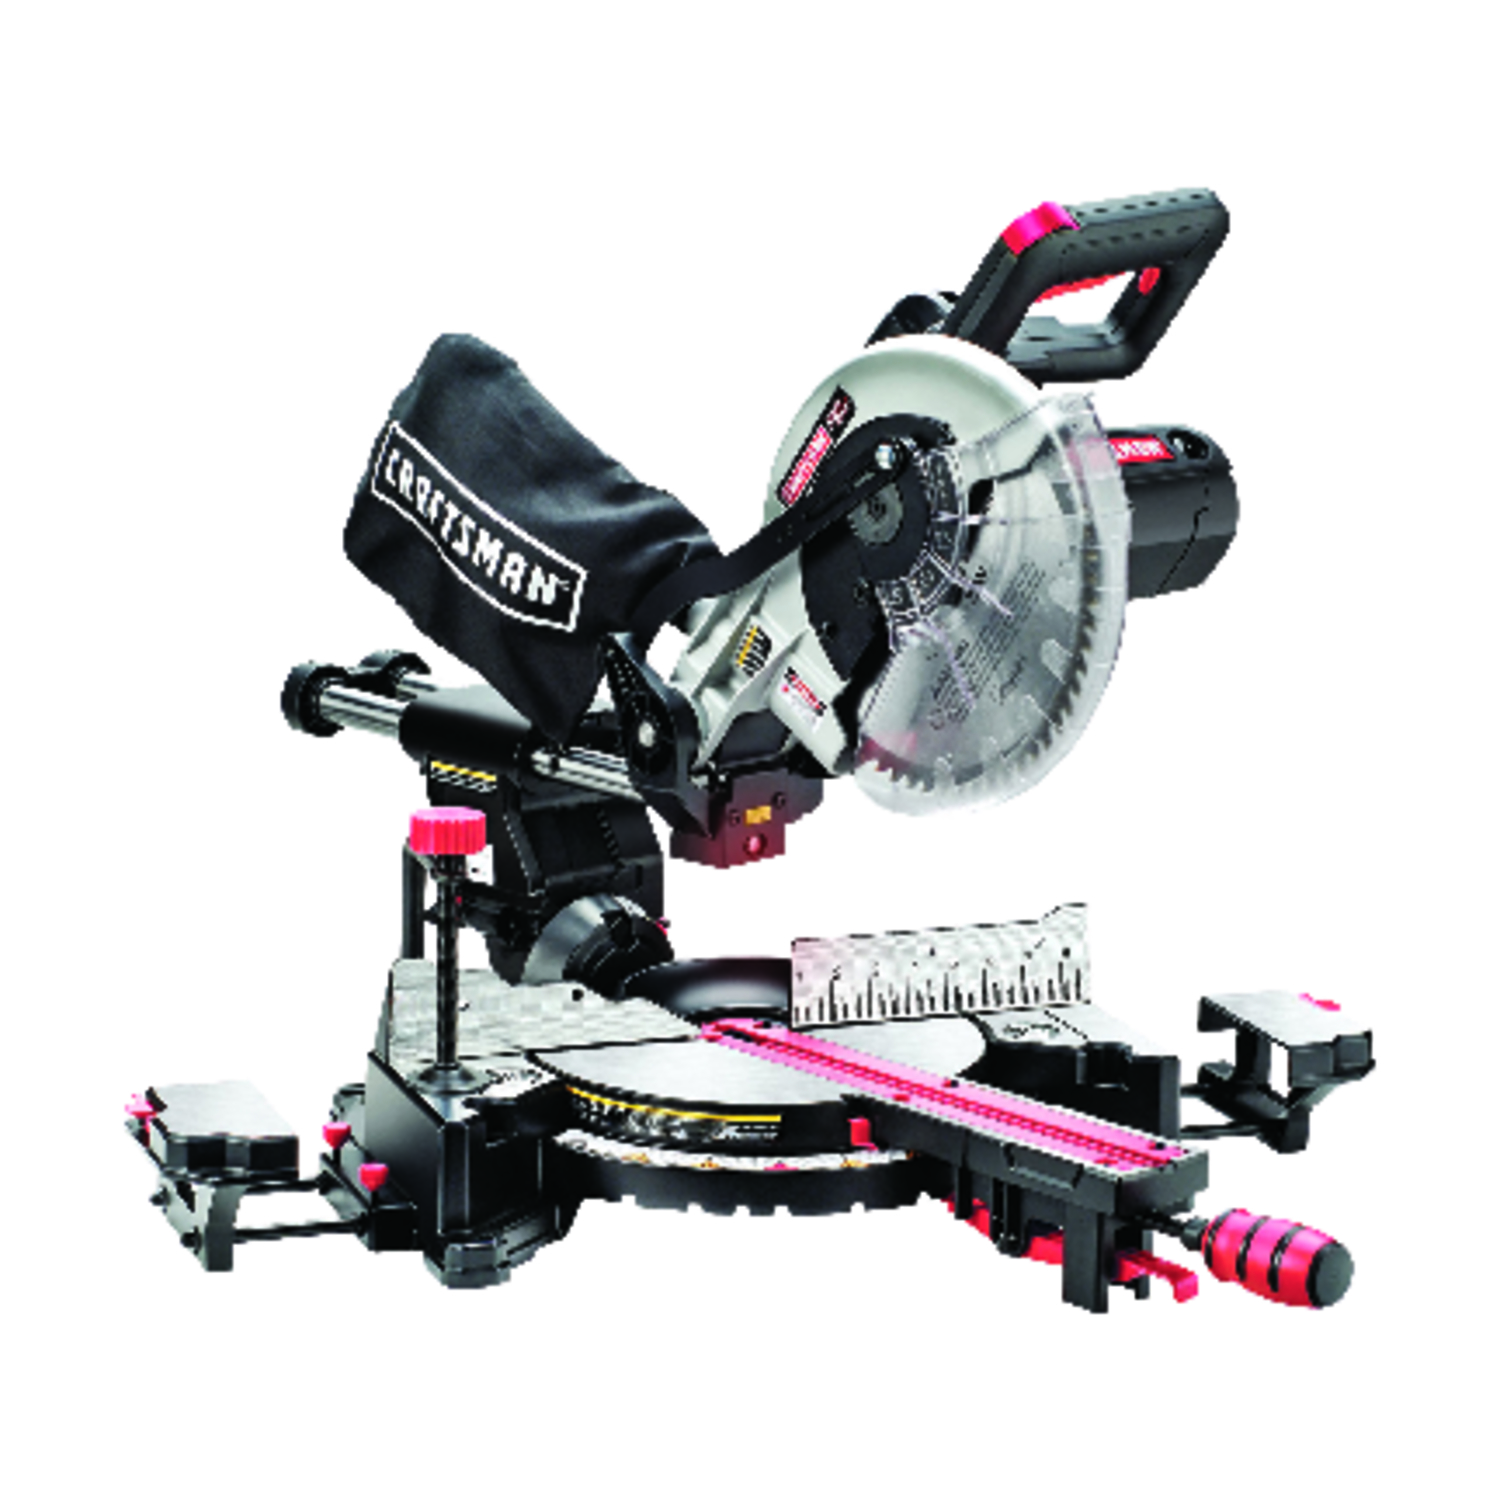 small resolution of craftsman 10 in corded compound miter saw with laser kit 120 volt craftsman circular saw craftsman compound miter saw wiring diagram